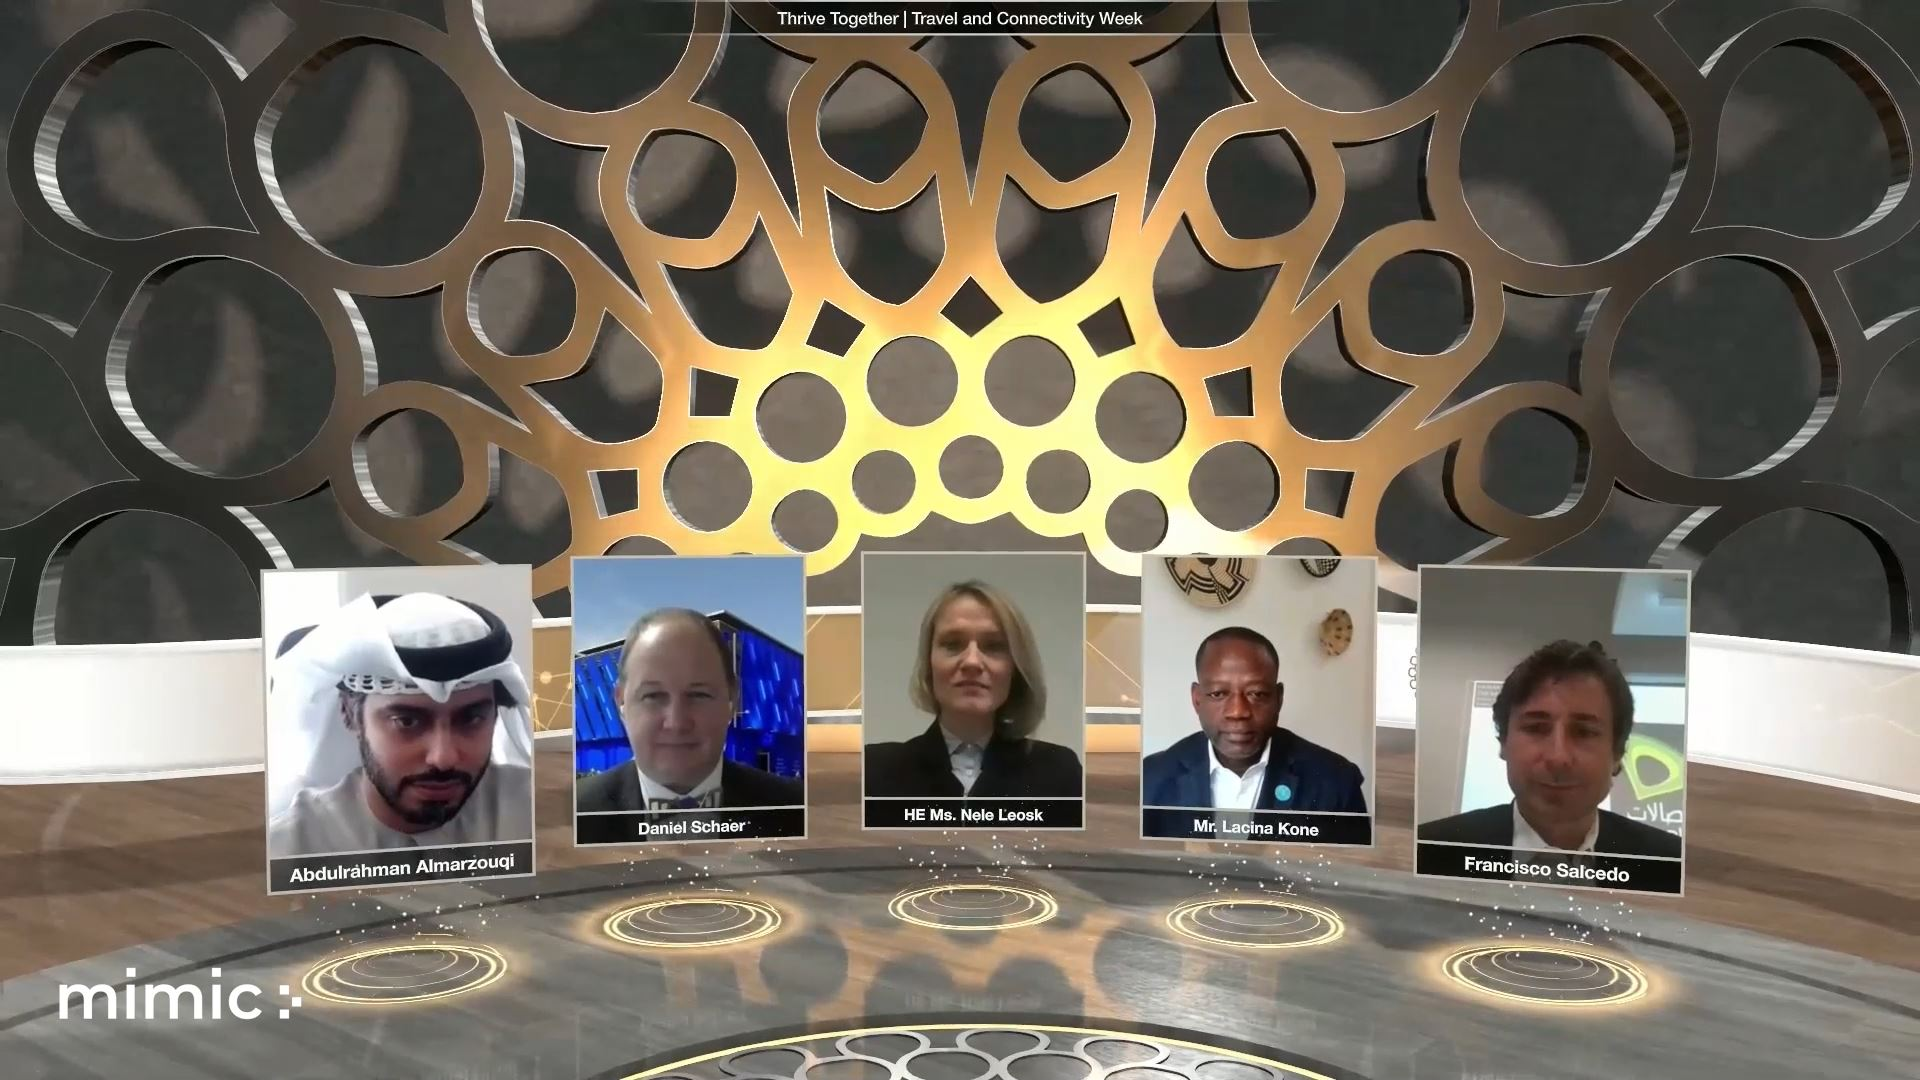 expo 2020 travel and connectivity week virtual event panel discussion